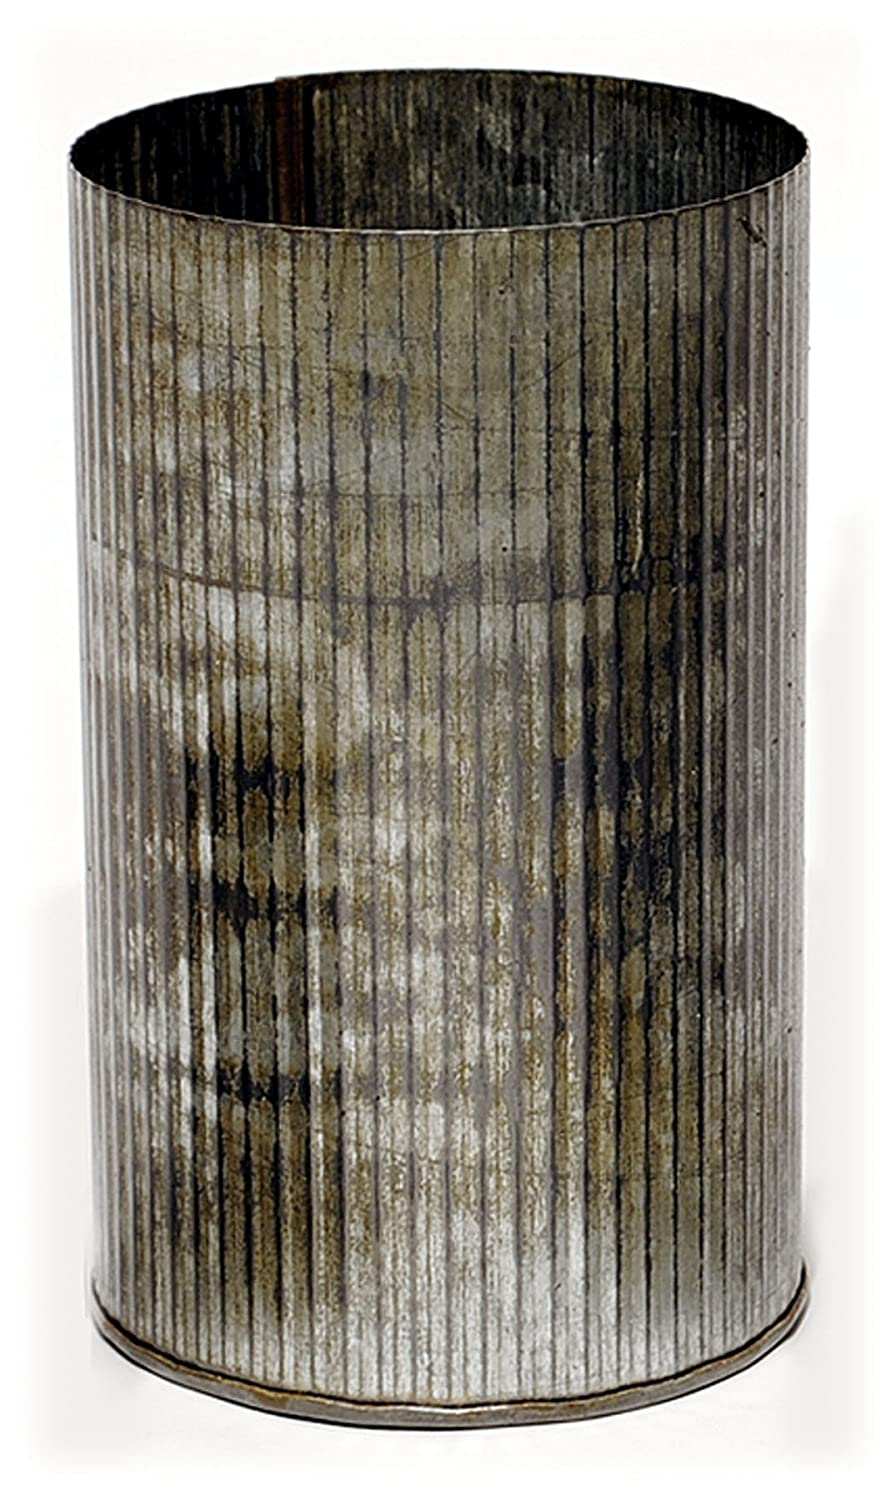 Zinc cylinder farmhouse vase with corrugated metal. #frenchfarmhouse #zincvase #homedecor #frenchcountry